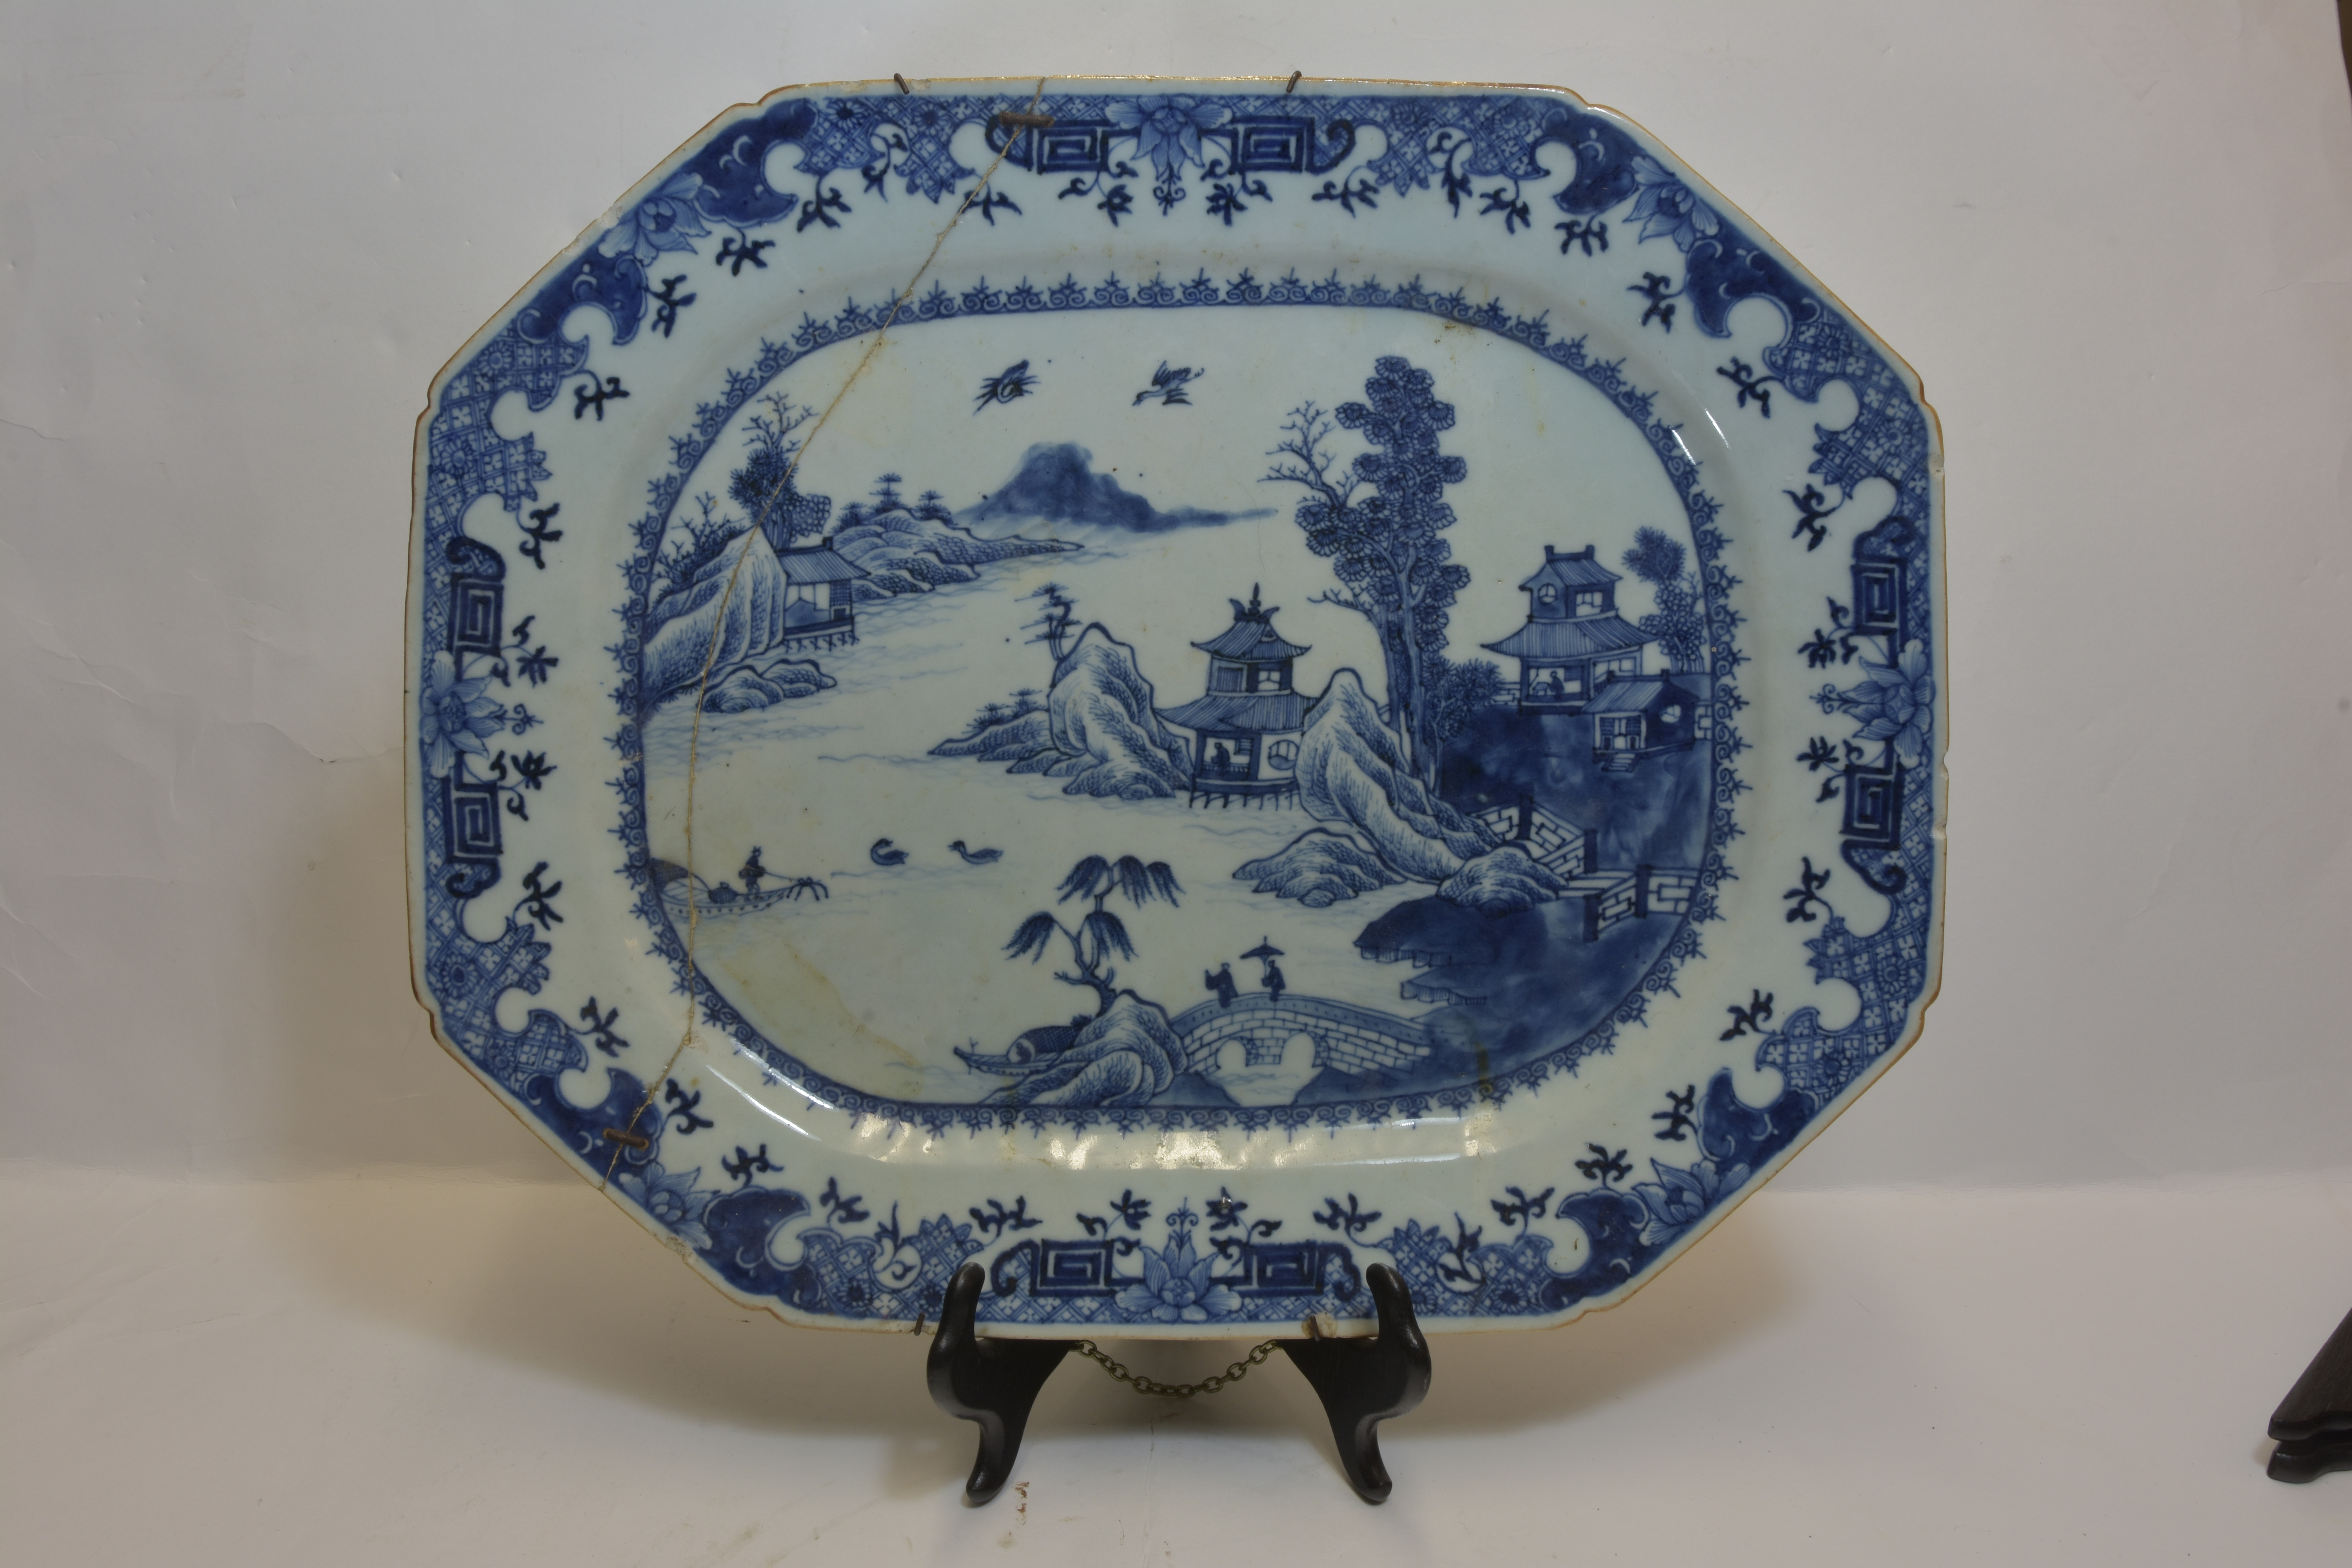 Lot 12 - An 18th century dish together with two 19th century plates 25cm diameter (3) 乾隆或遲 青花碟叁件